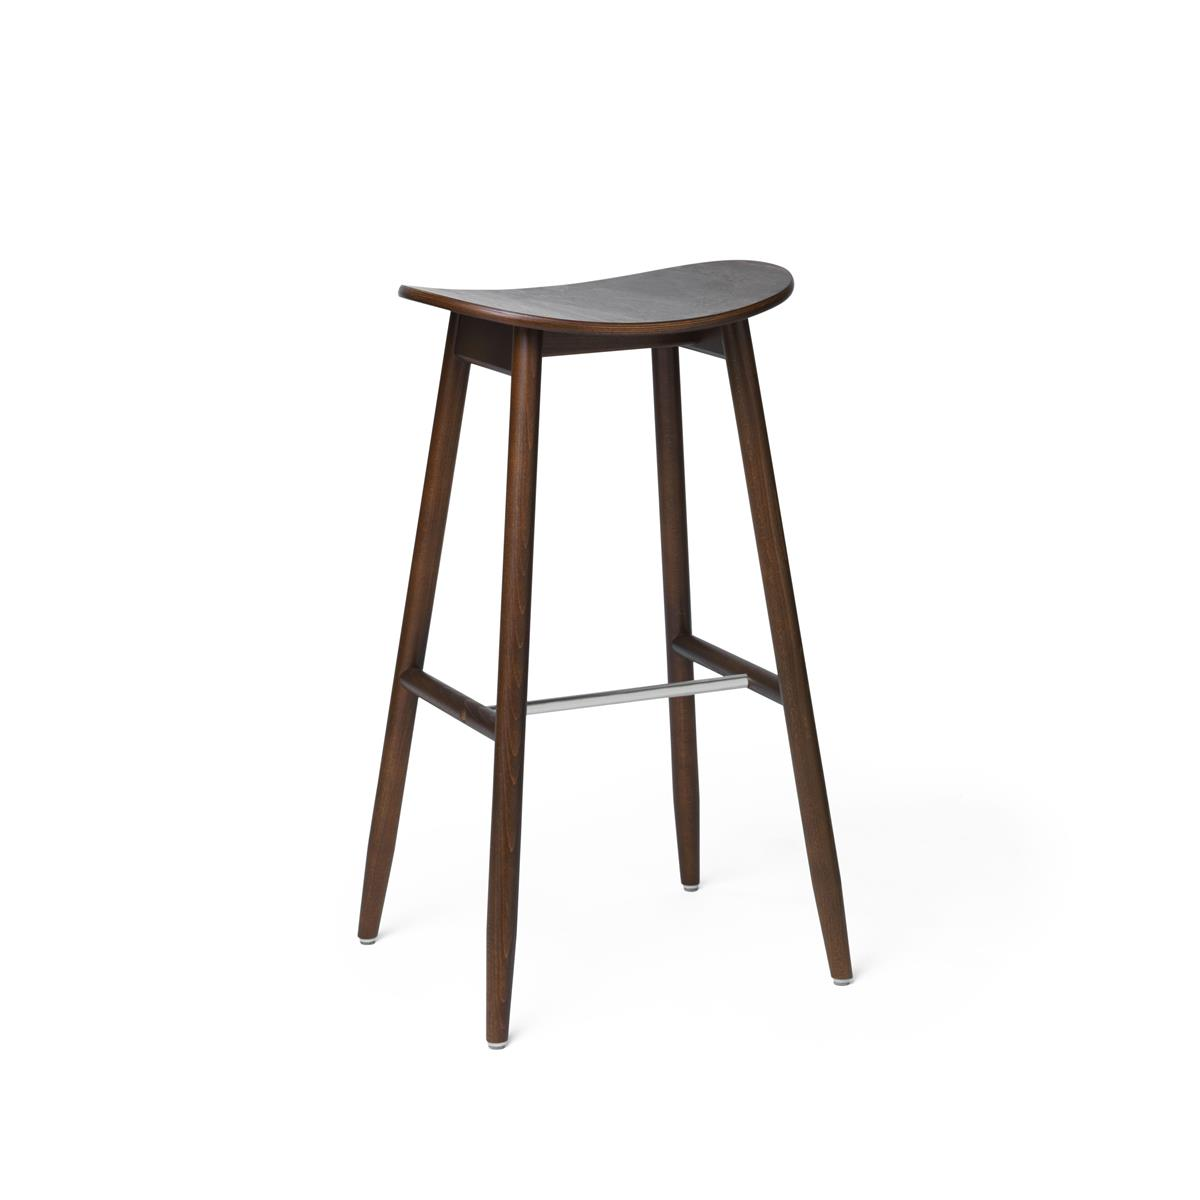 Icha Bar Stool - Walnut Stained